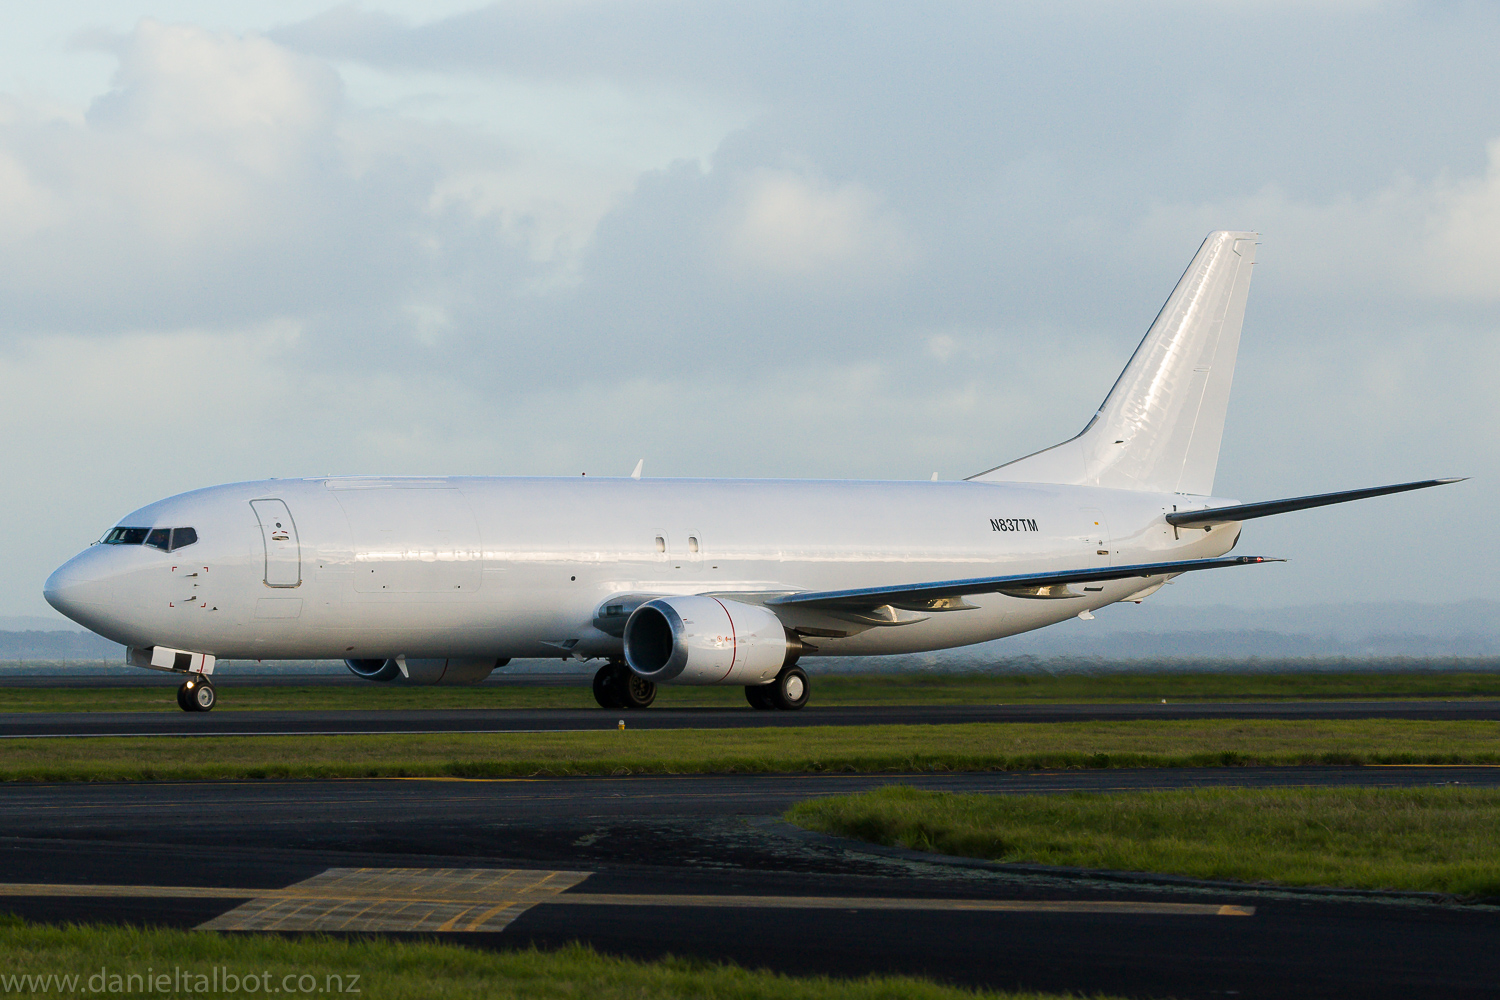 Boeing 737 400 Freighter N837tm Zk Pat Article Tue